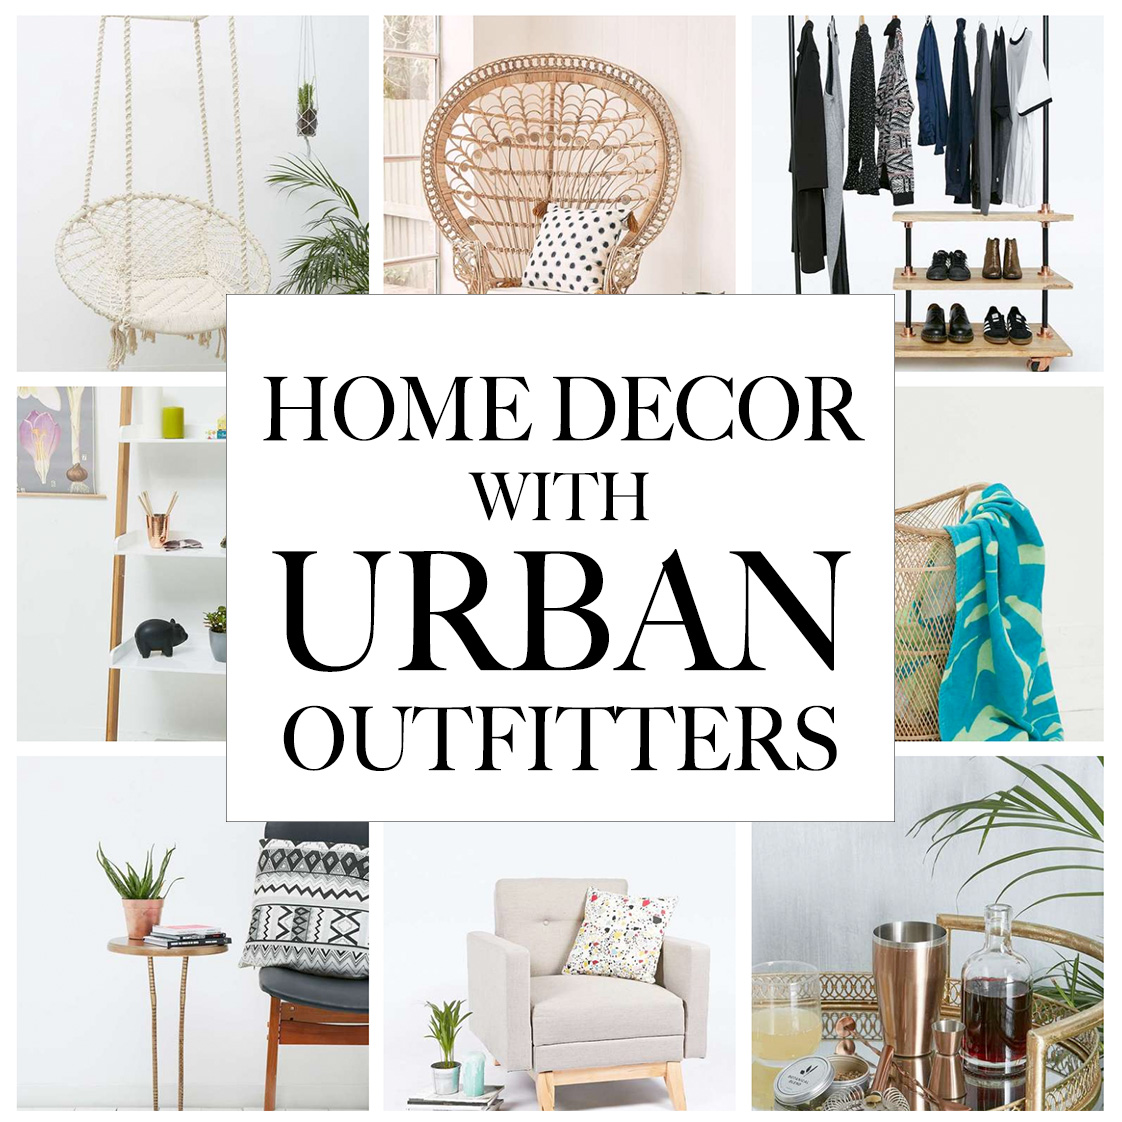 Favorite summer dresses at urban outfitters silver girl for Home decor like urban outfitters